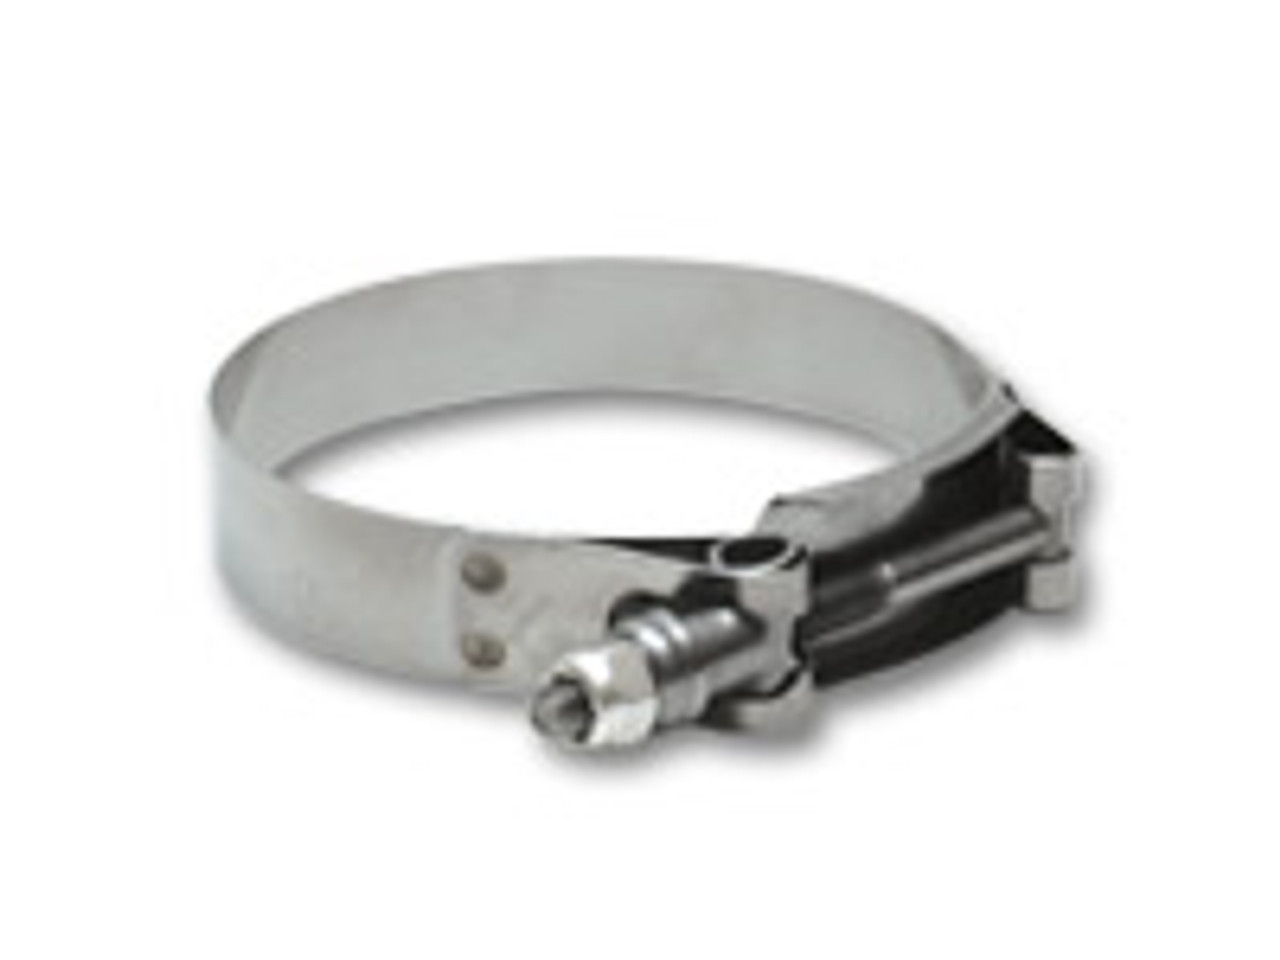 Vibrant SS T-Bolt Clamps Pack of 2 Size Range: 1.75in to 2.10in O.D.